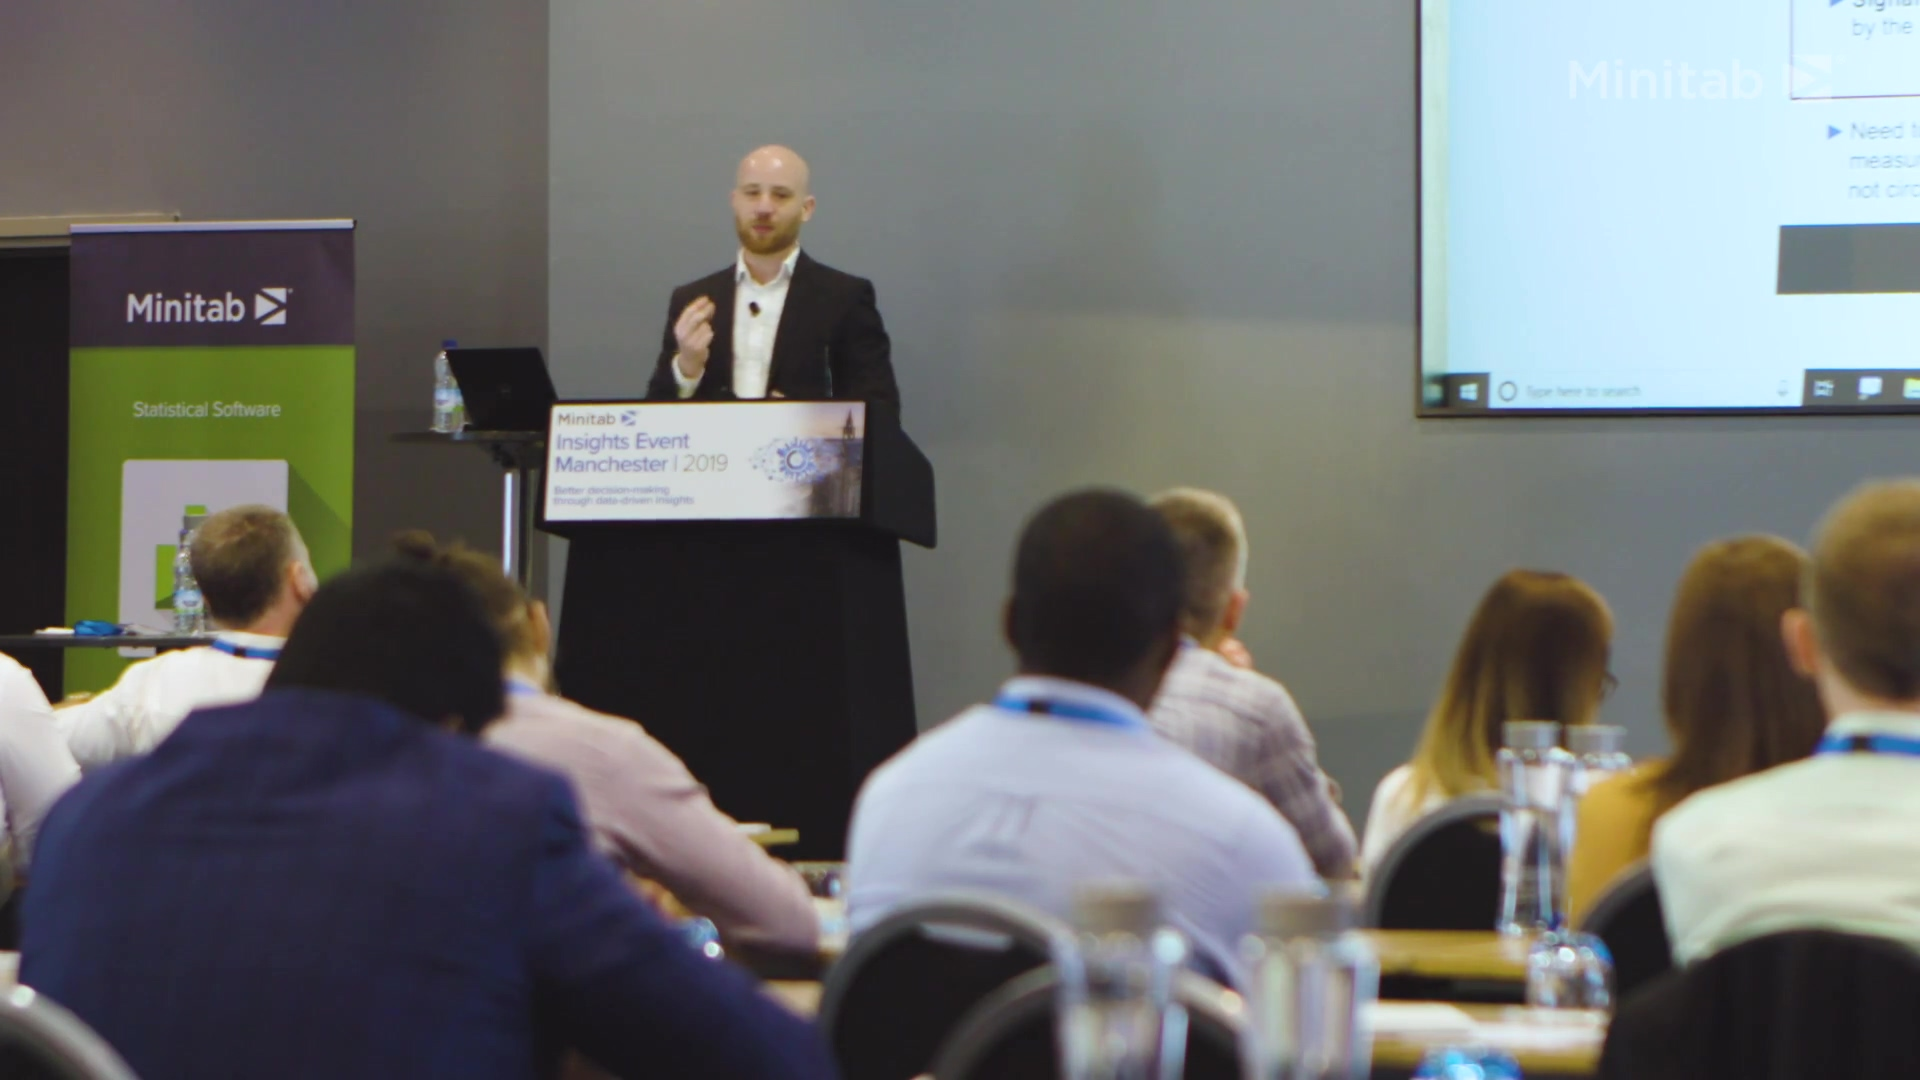 EMEIA EV ENG Video of Insights Event Manchester UK June 2019-thumb-1